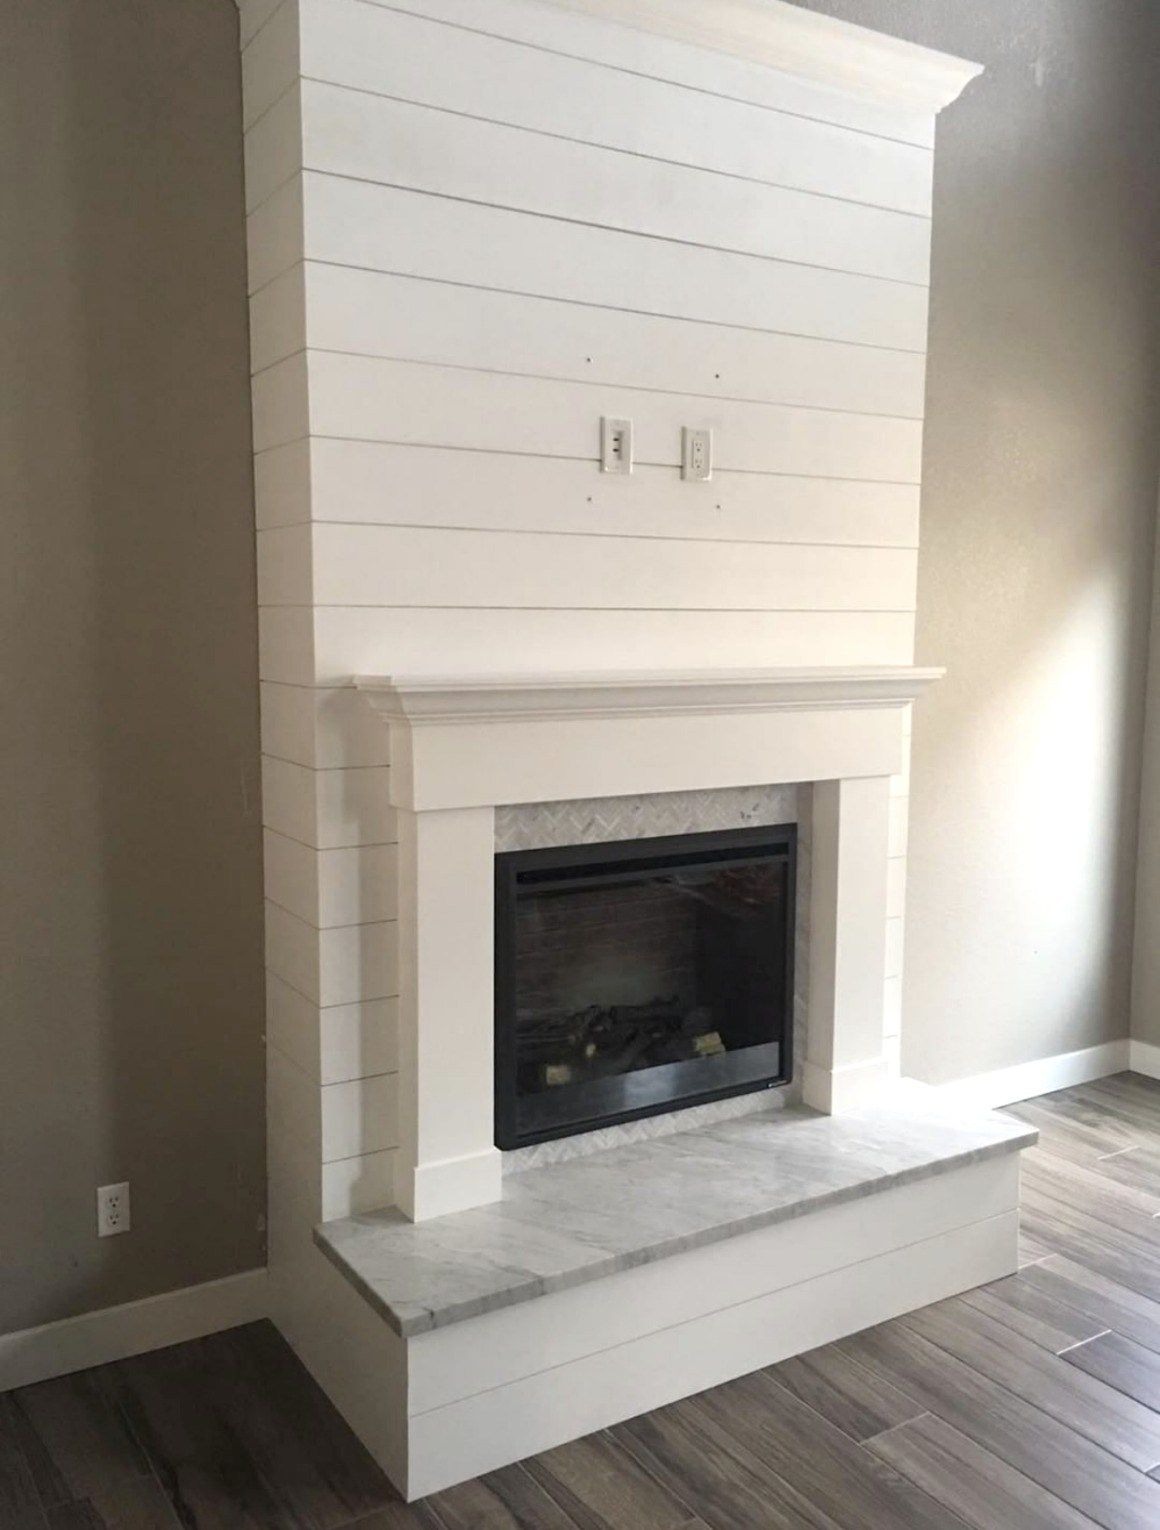 Fireplace Reveal- Our Electric Brick Fireplace #whitebrickfireplace